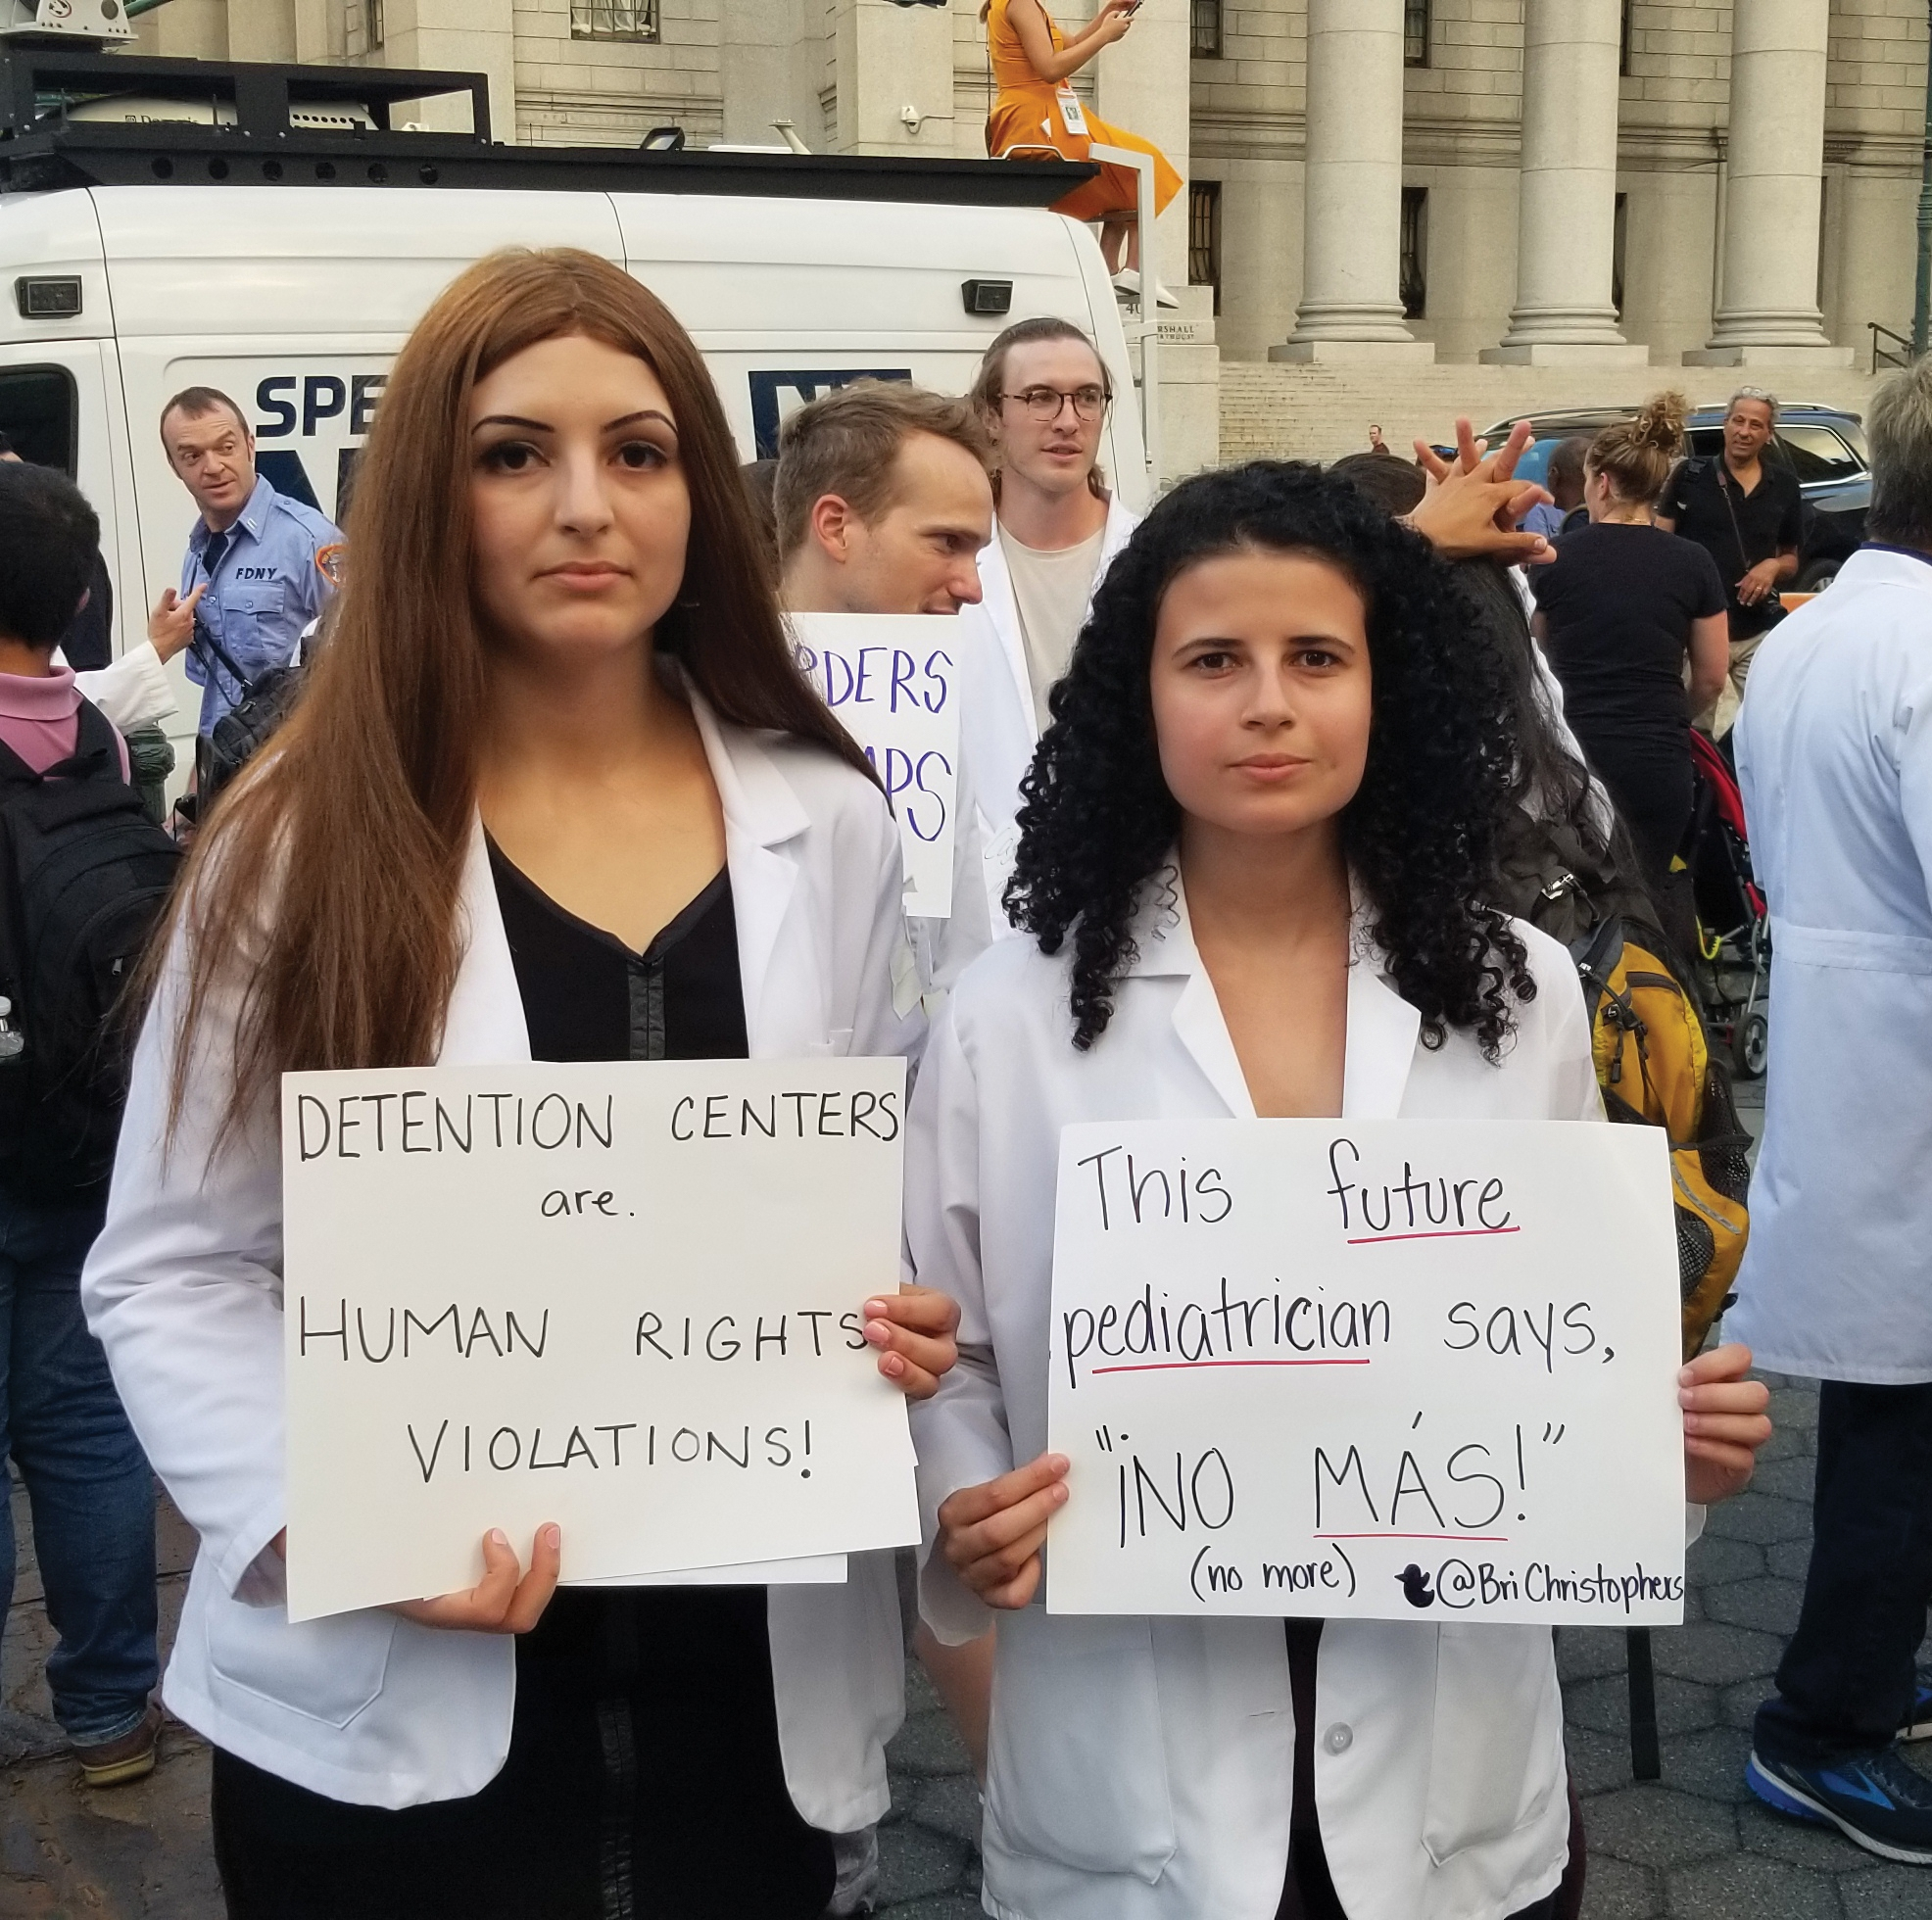 two woman holding up signs in protest